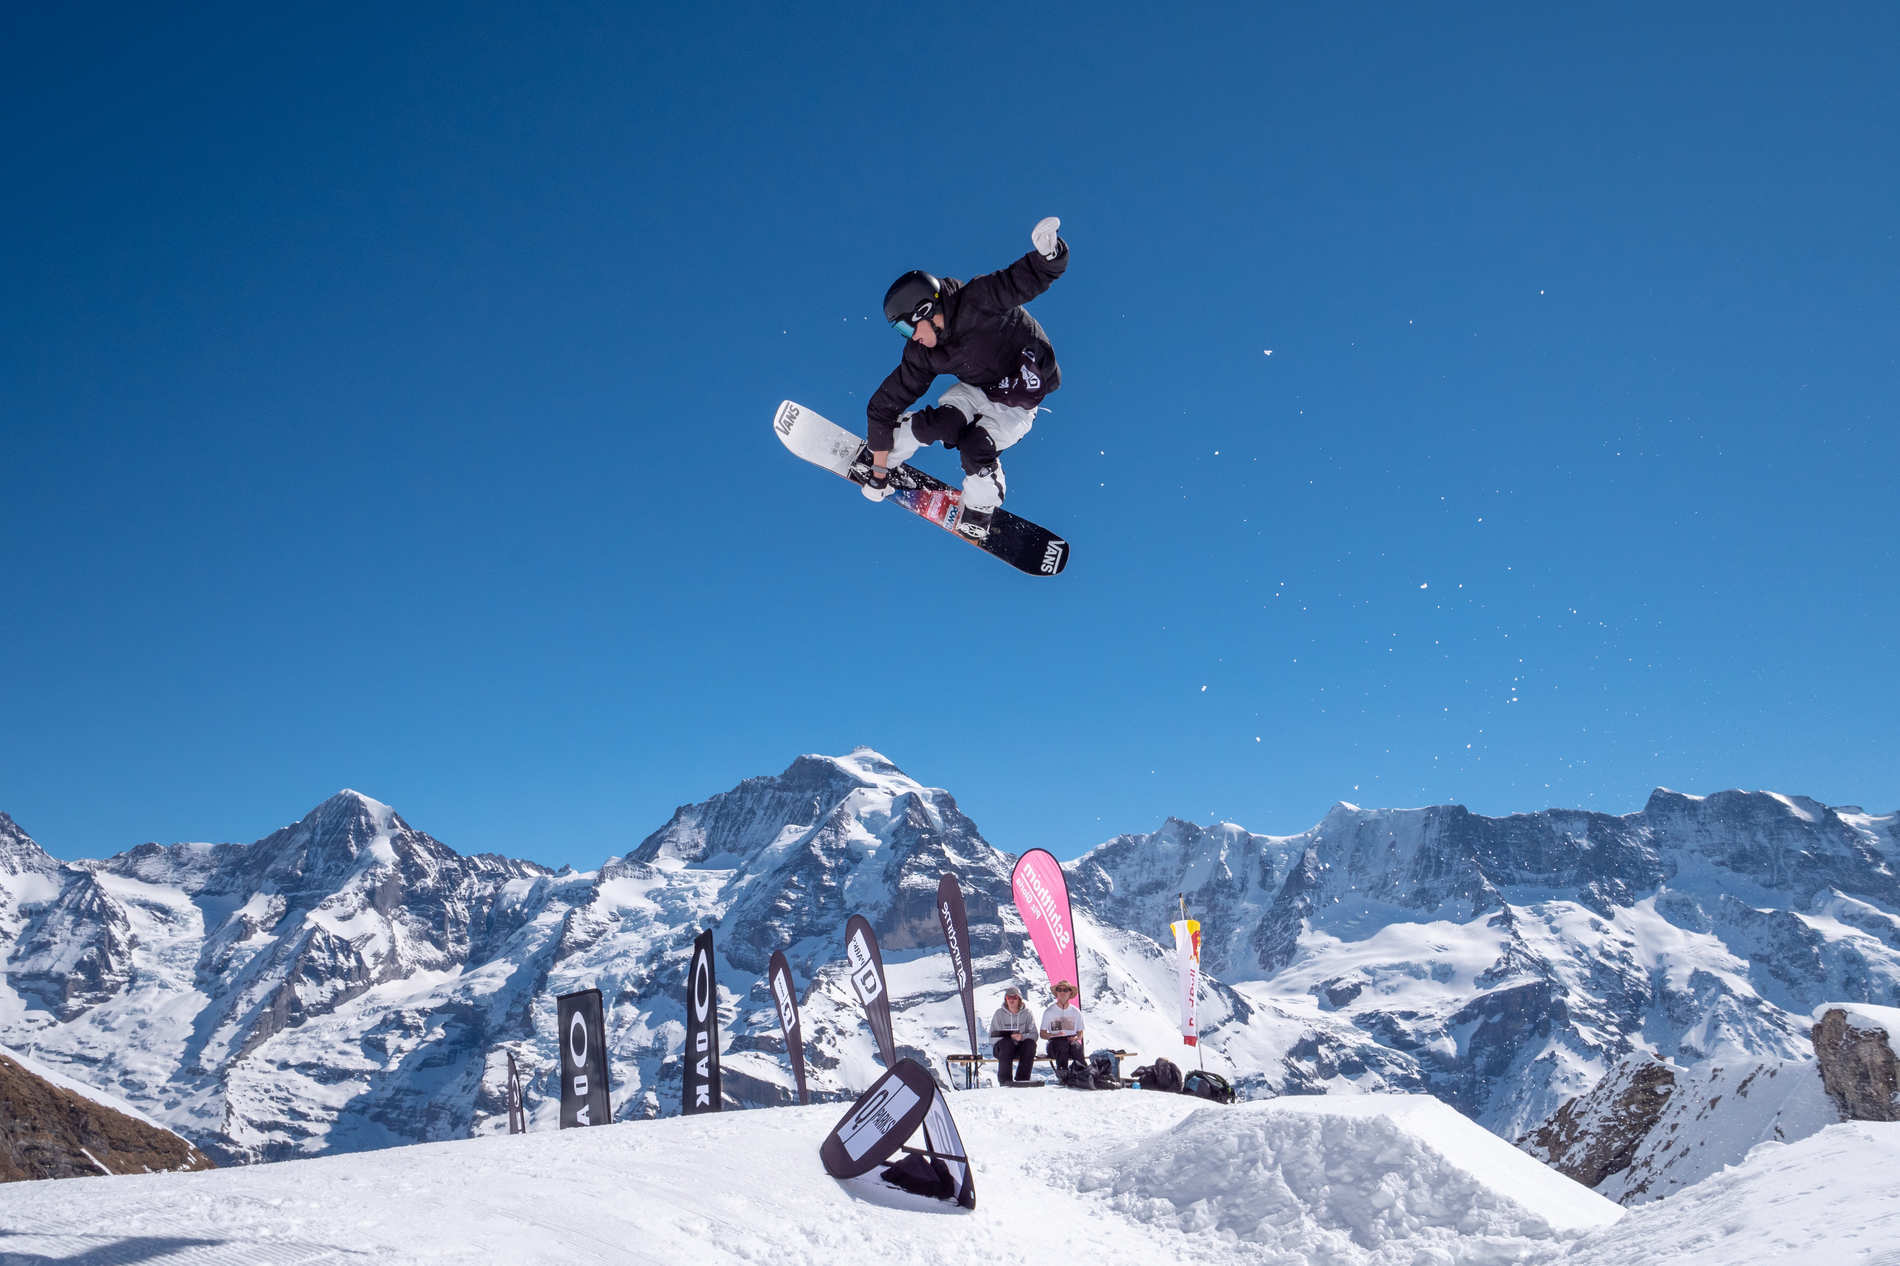 schilthorn 23 03 2019 action sb unknown patrick luchs qparks 009